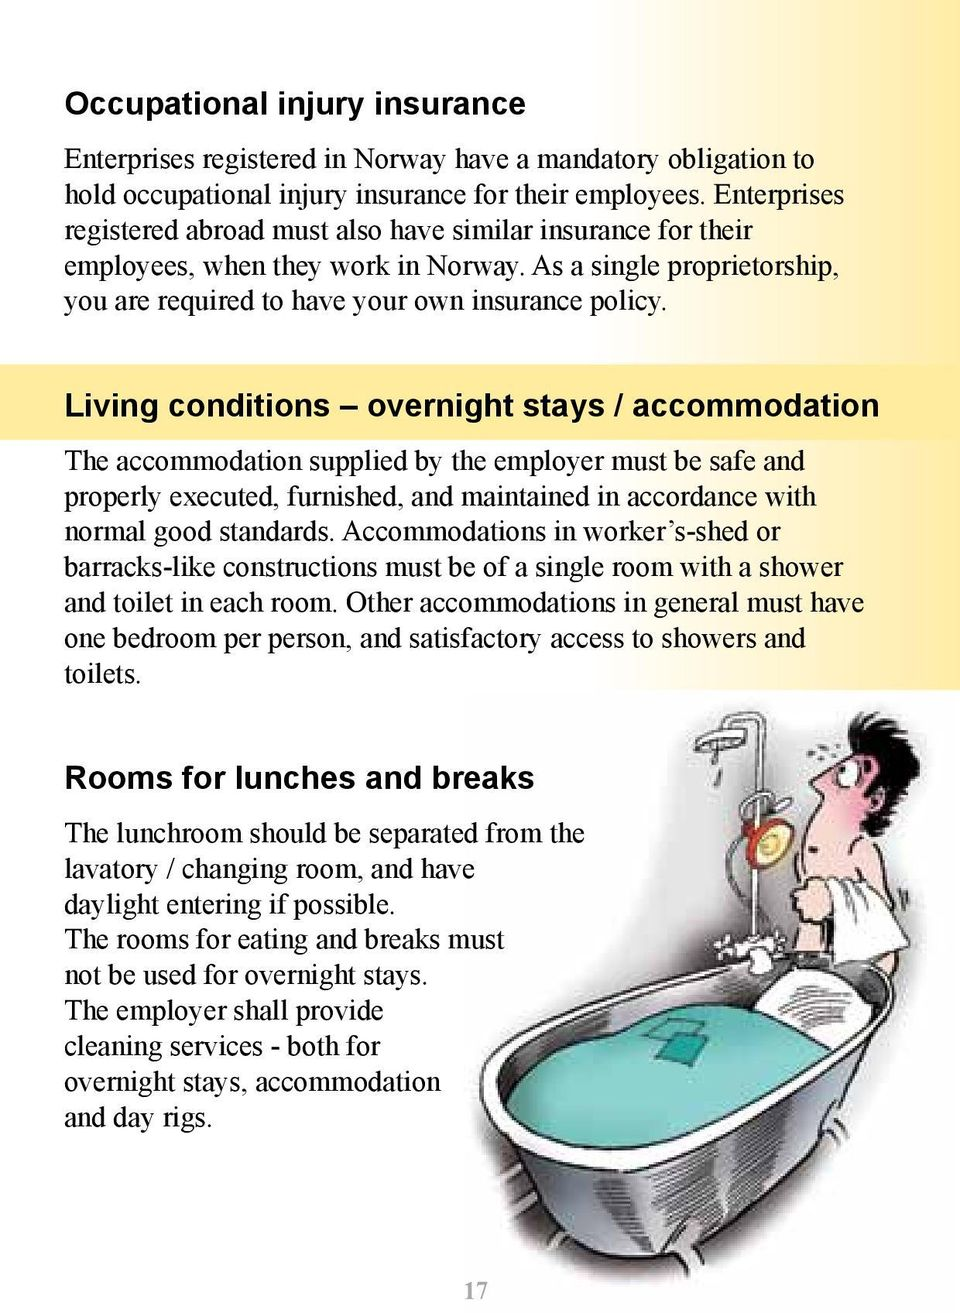 Living conditions overnight stays / accommodation The accommodation supplied by the employer must be safe and properly executed, furnished, and maintained in accordance with normal good standards.